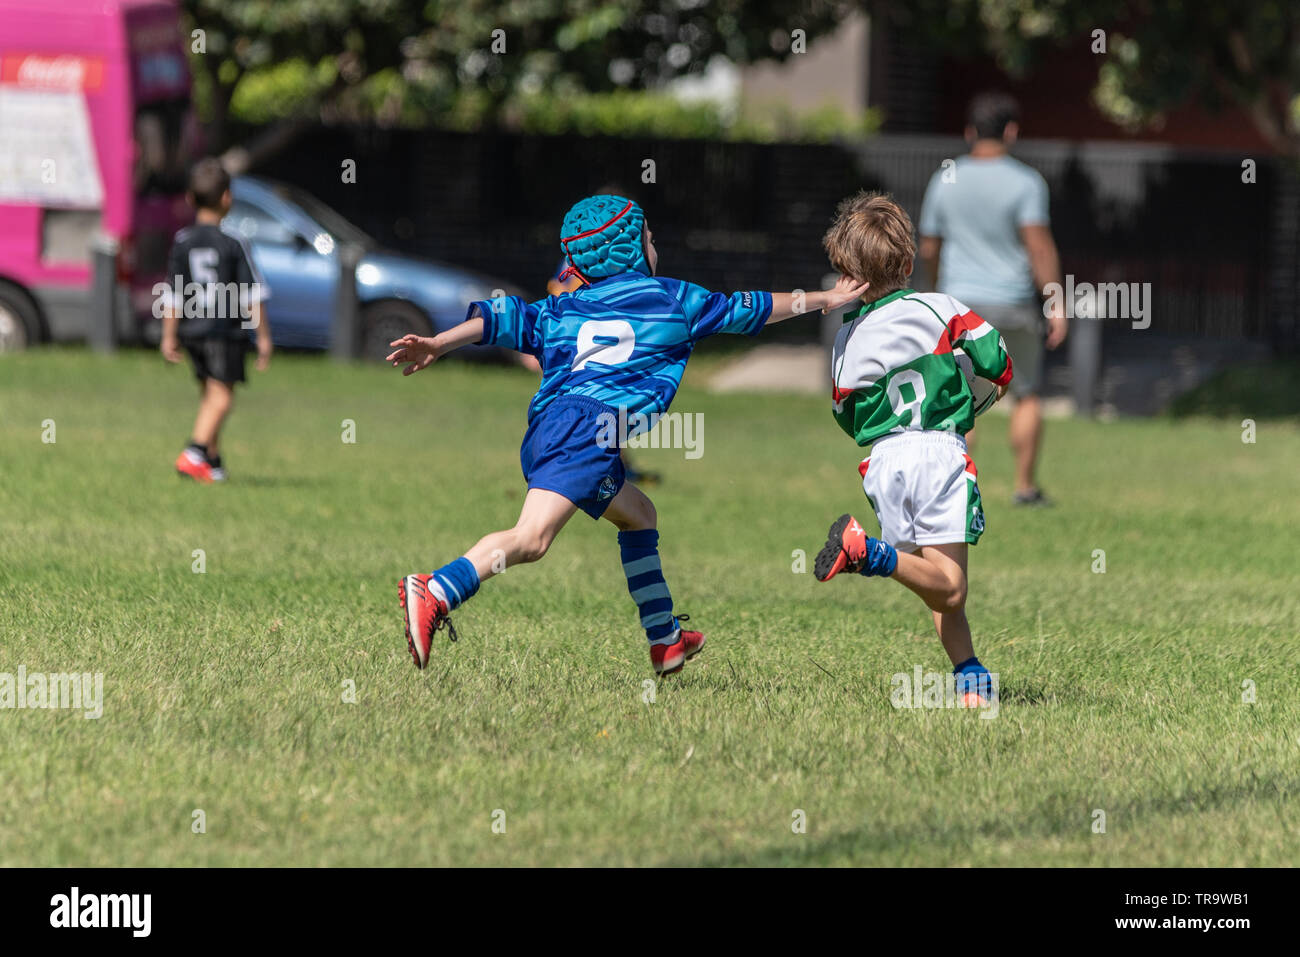 Australian football game kiss playing tackling each other - Stock Image